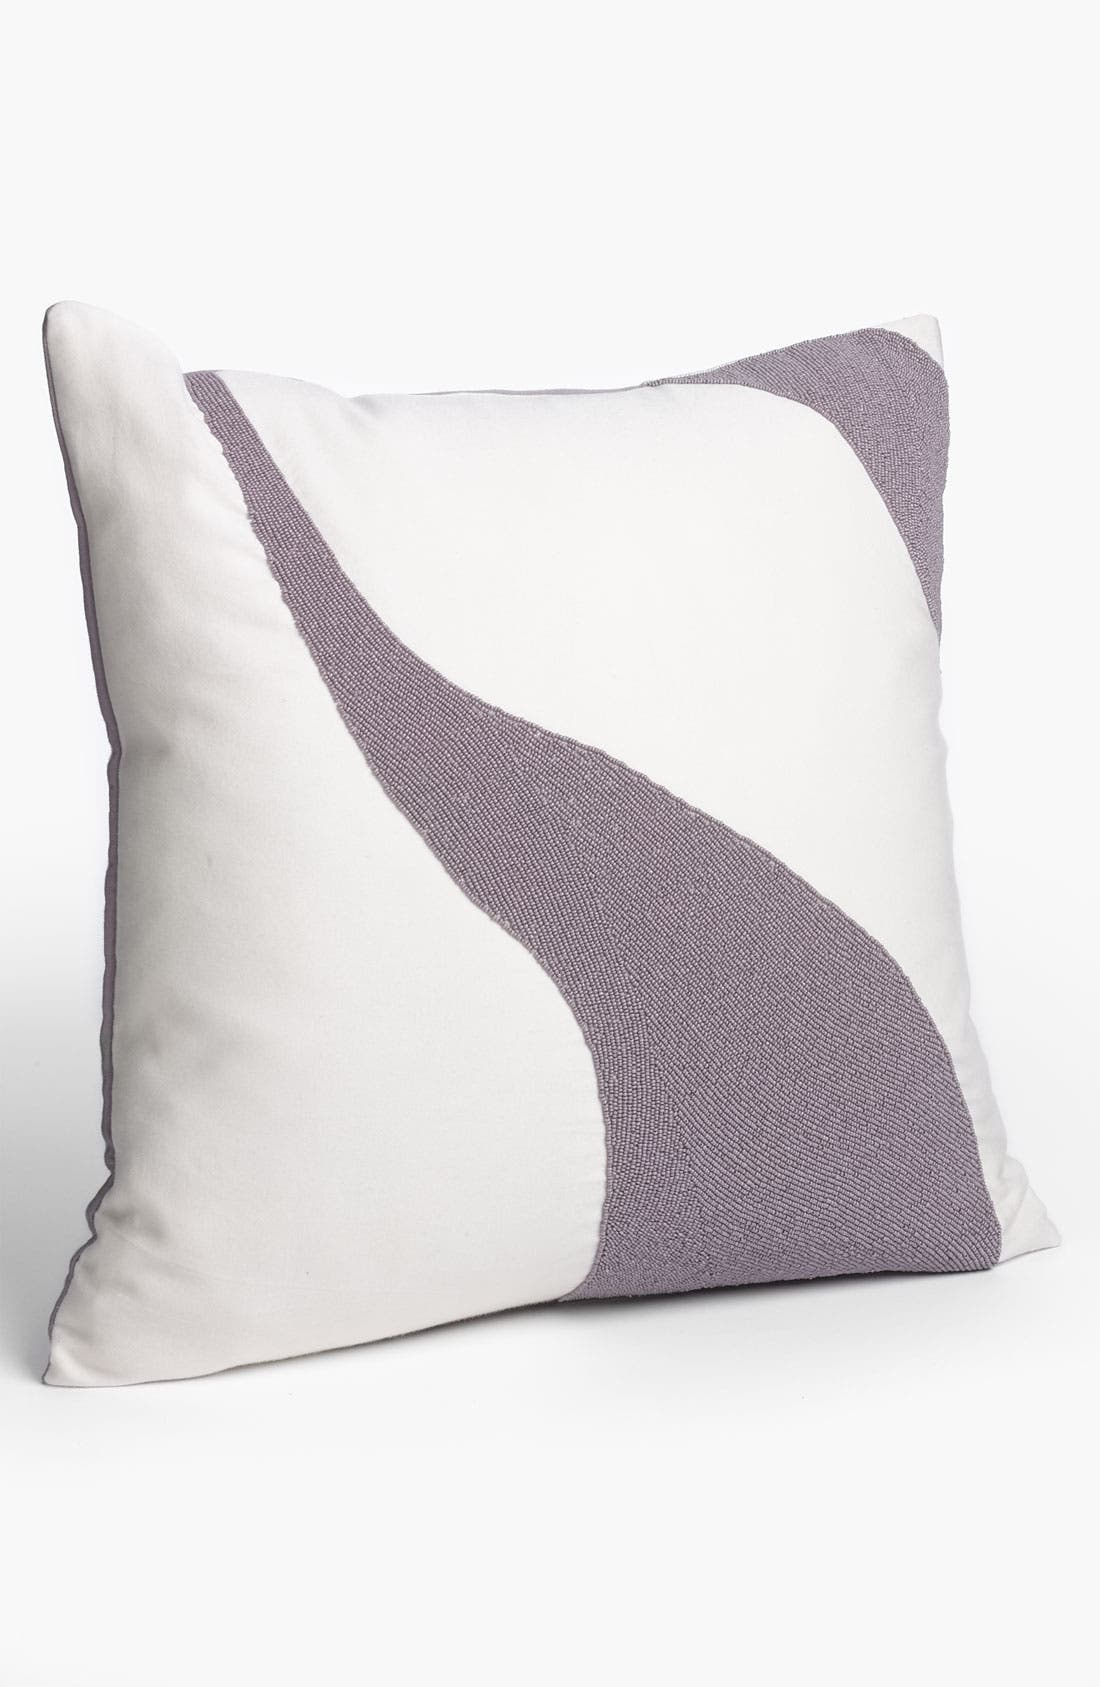 Alternate Image 1 Selected - Diane von Furstenberg 'Beaded Wave' Pillow